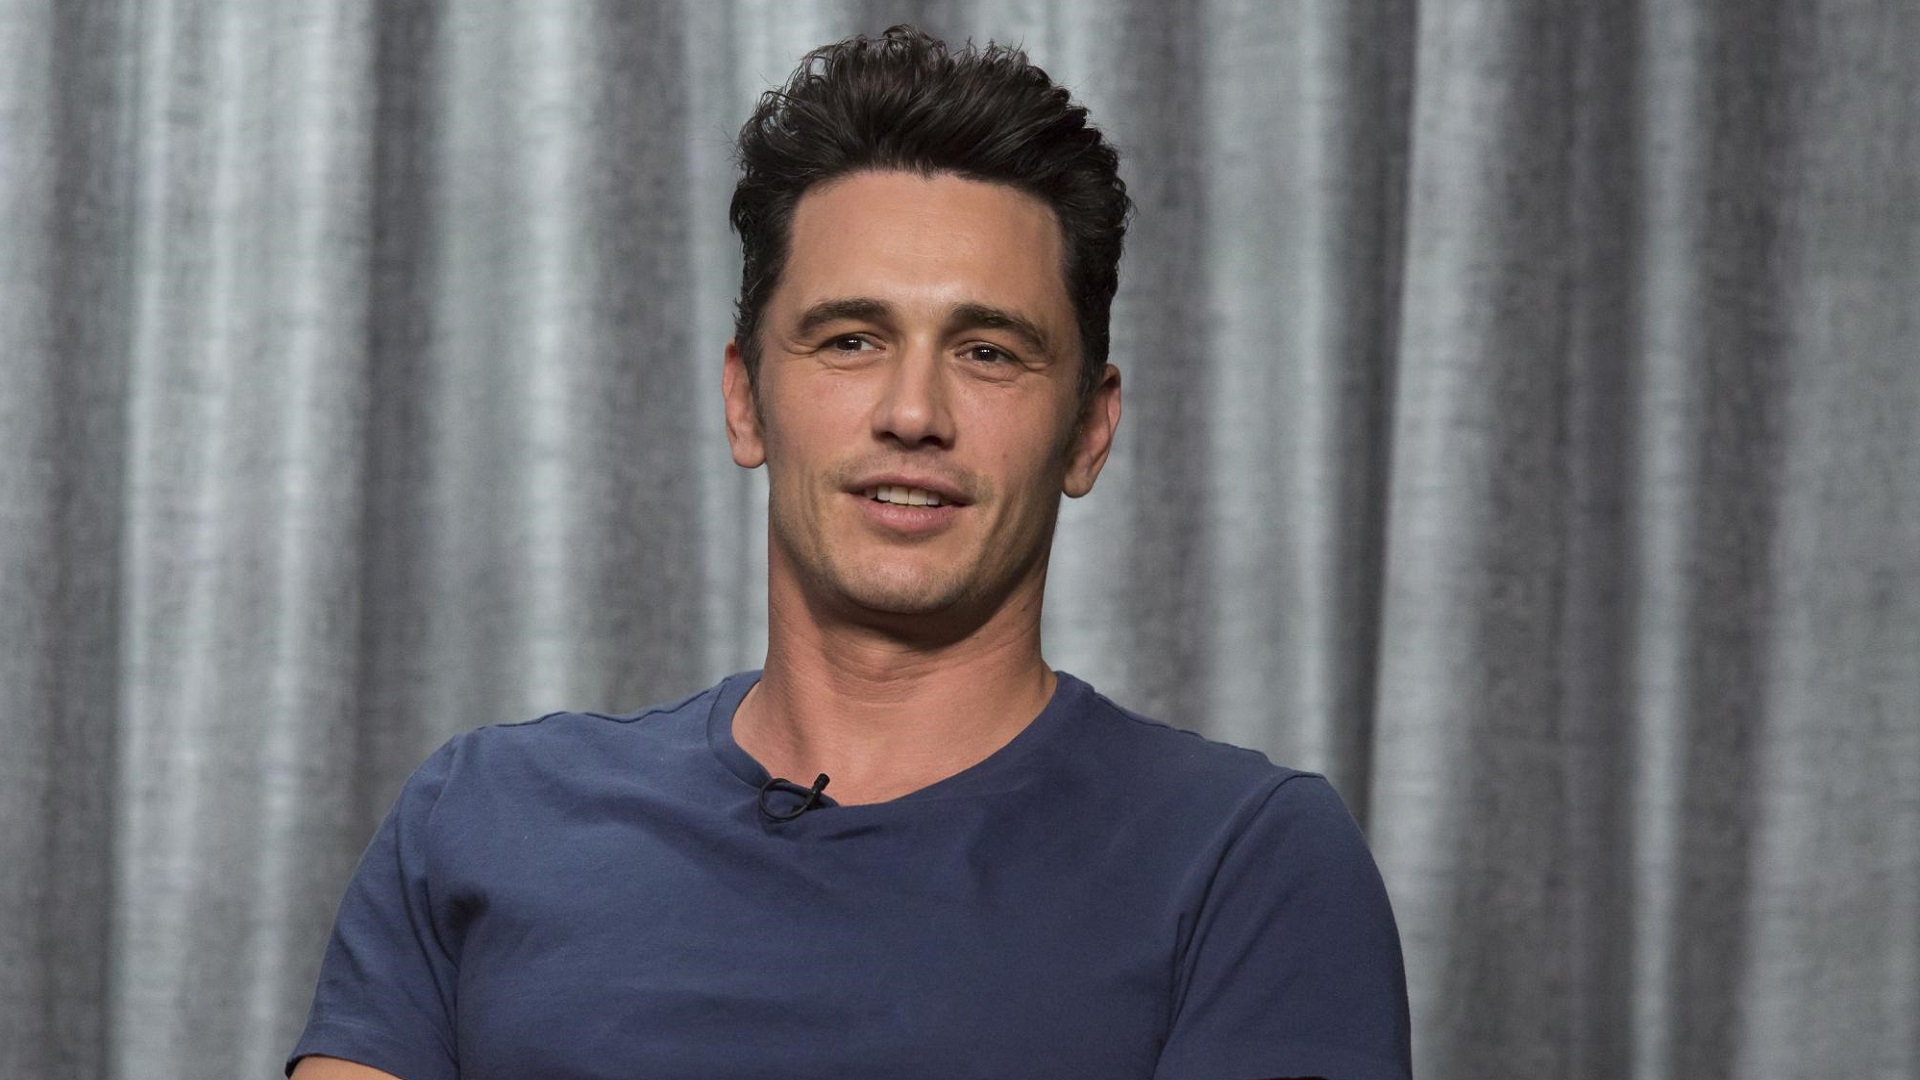 James Franco resuelve demanda por mala conducta sexual